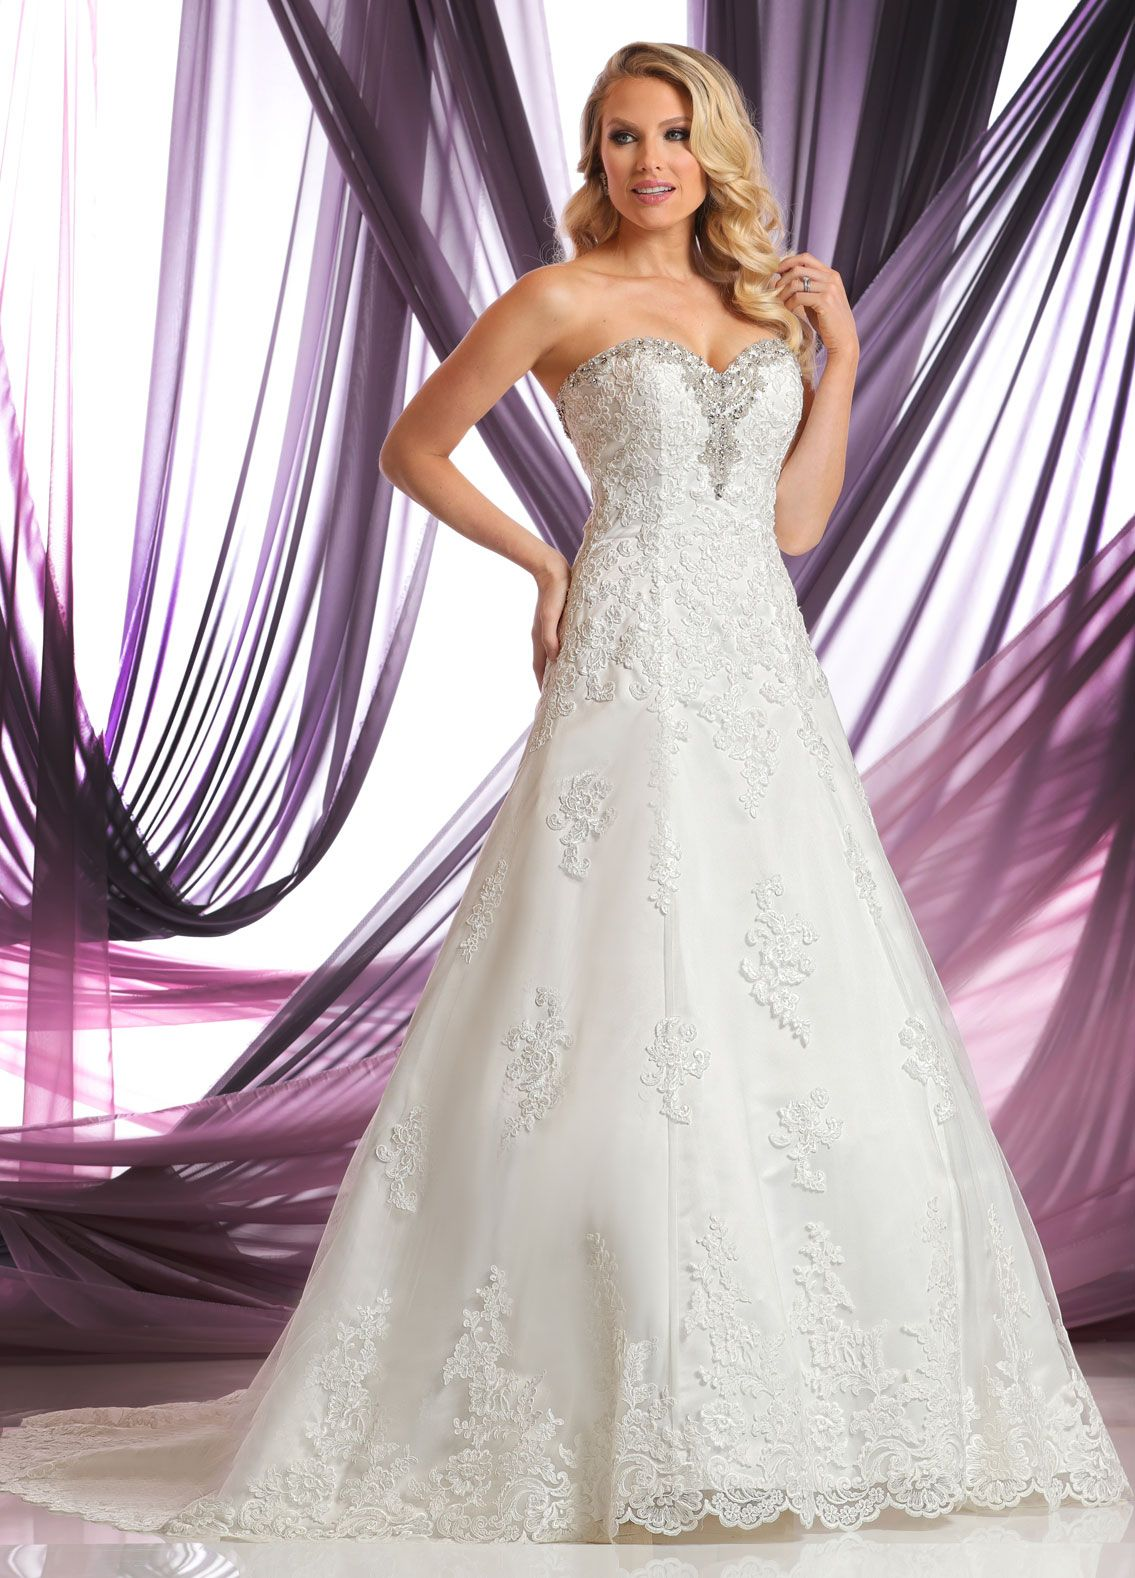 Wedding dresses gone wrong  You have endless options to choose from but we promise you canut go